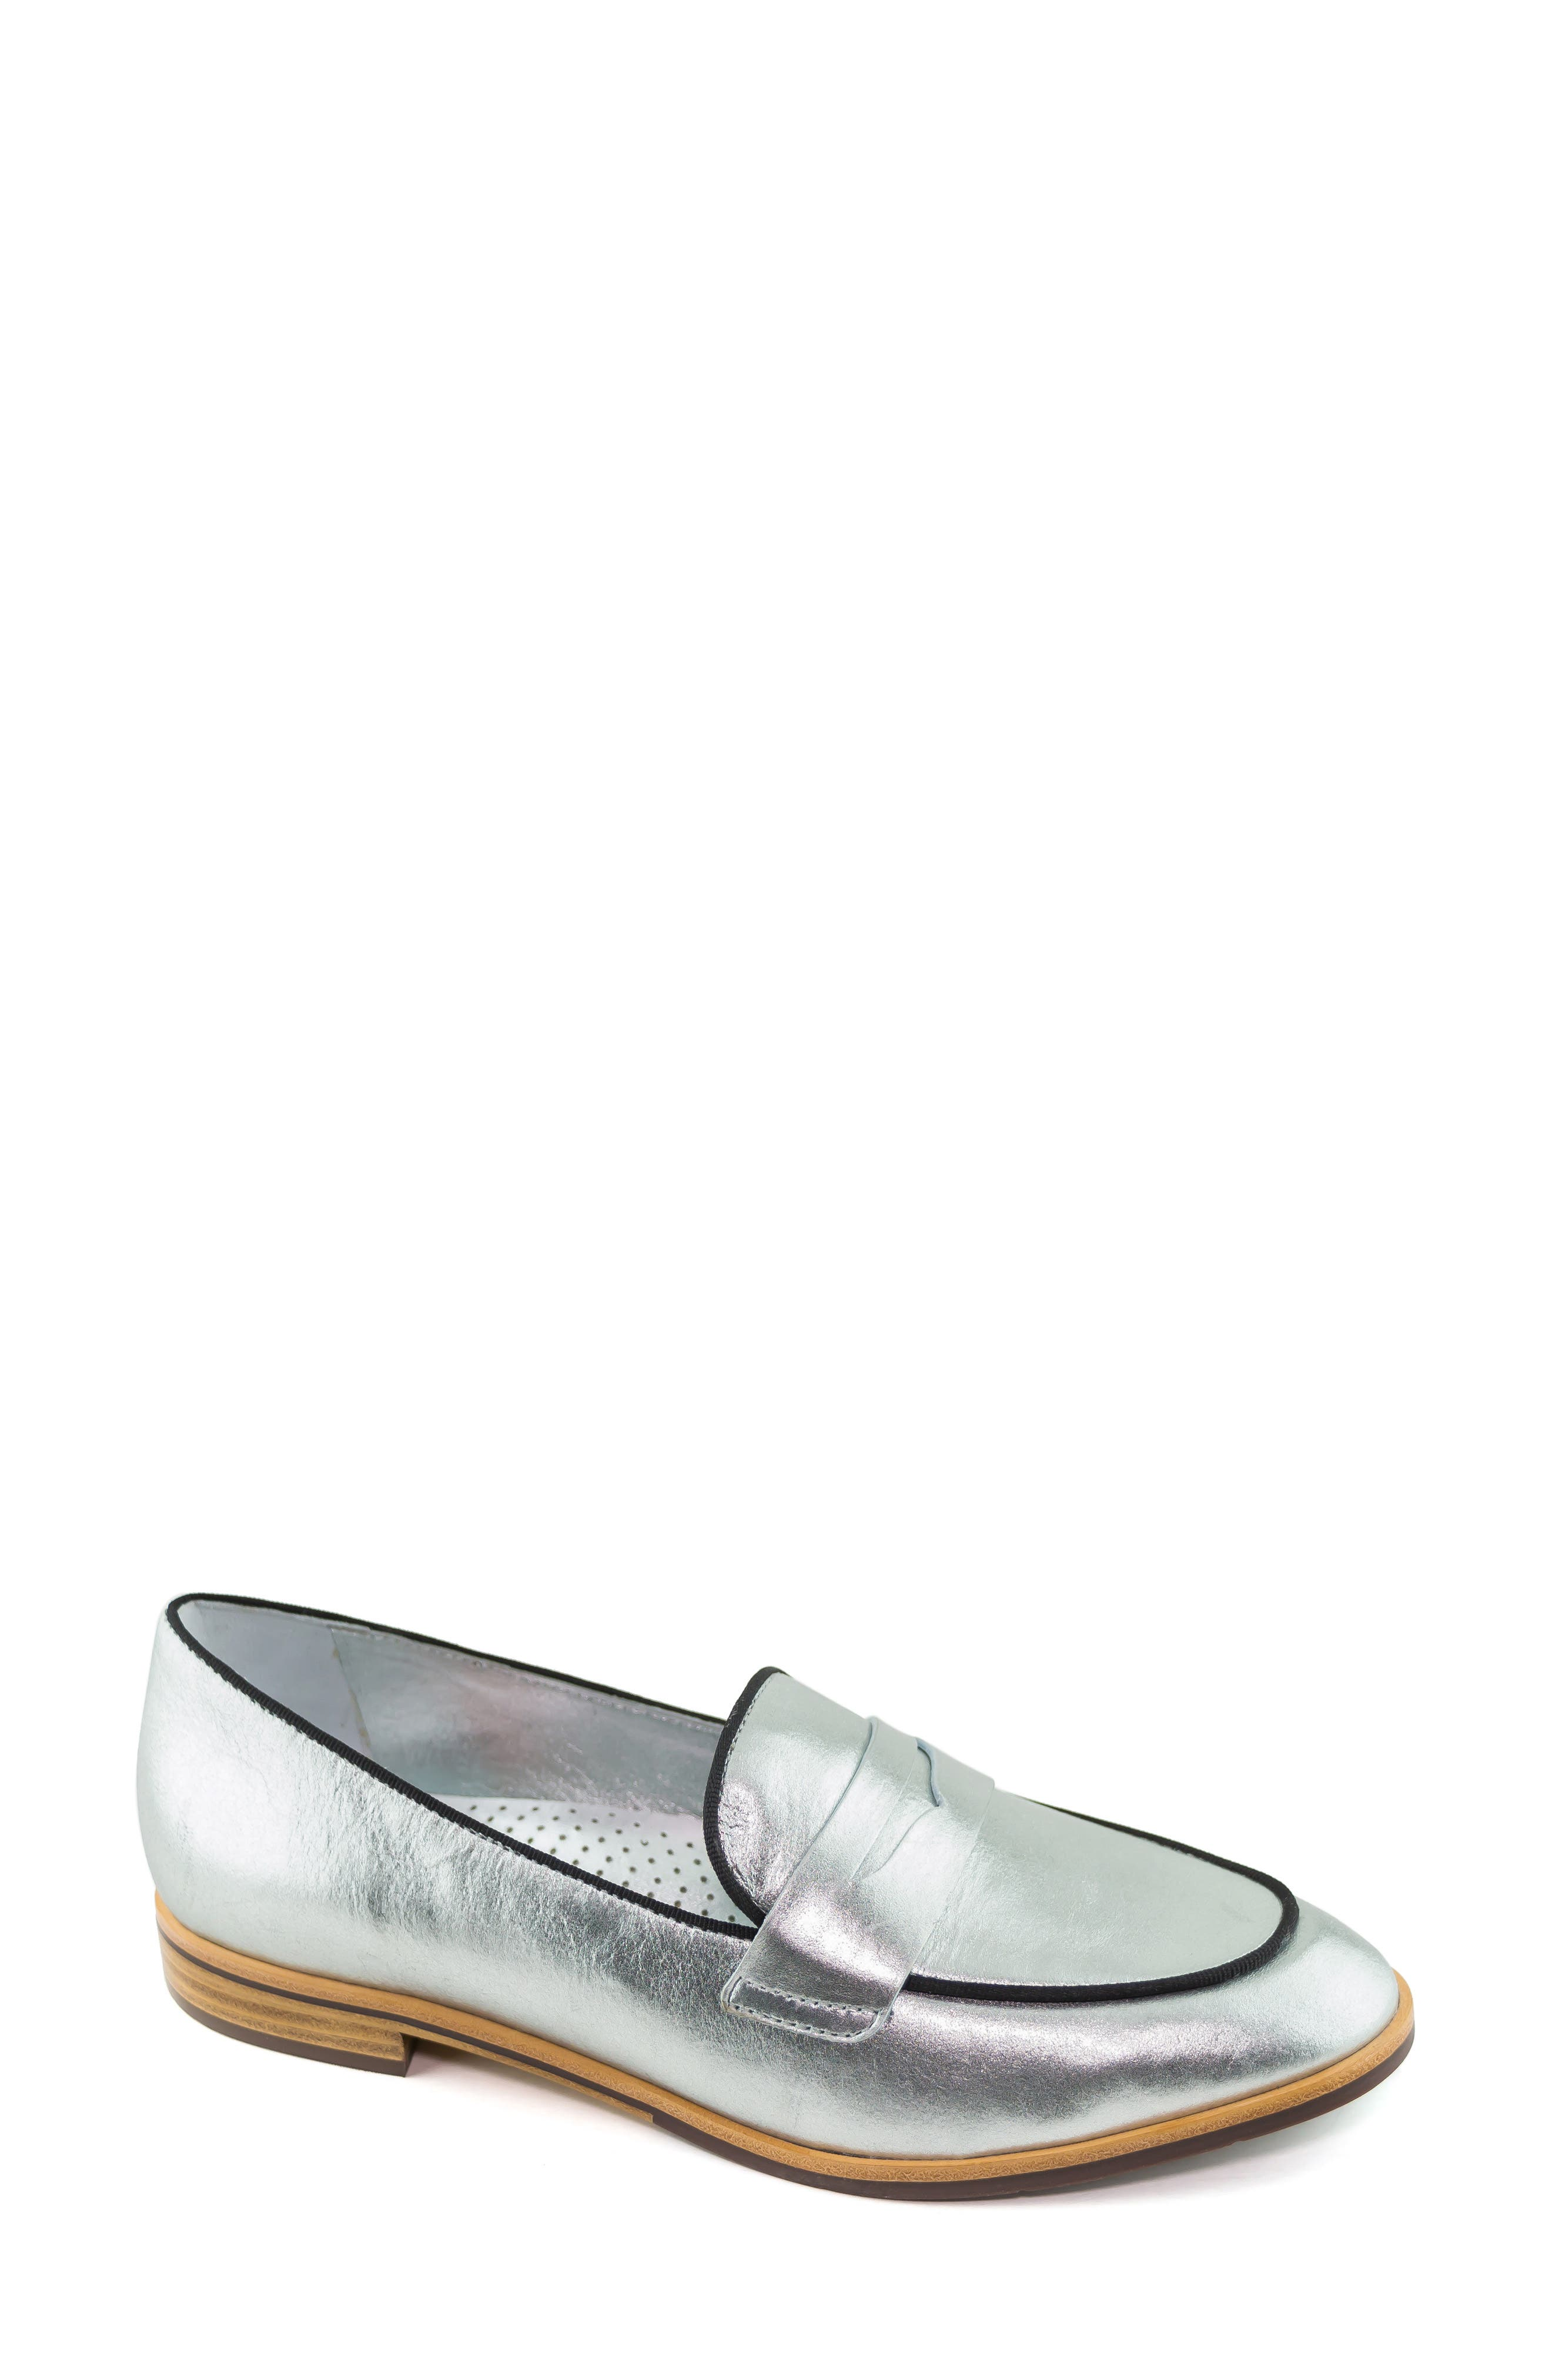 MARC JOSEPH NEW YORK, Bryant Park Loafer, Main thumbnail 1, color, GIPSY SILVER LEATHER